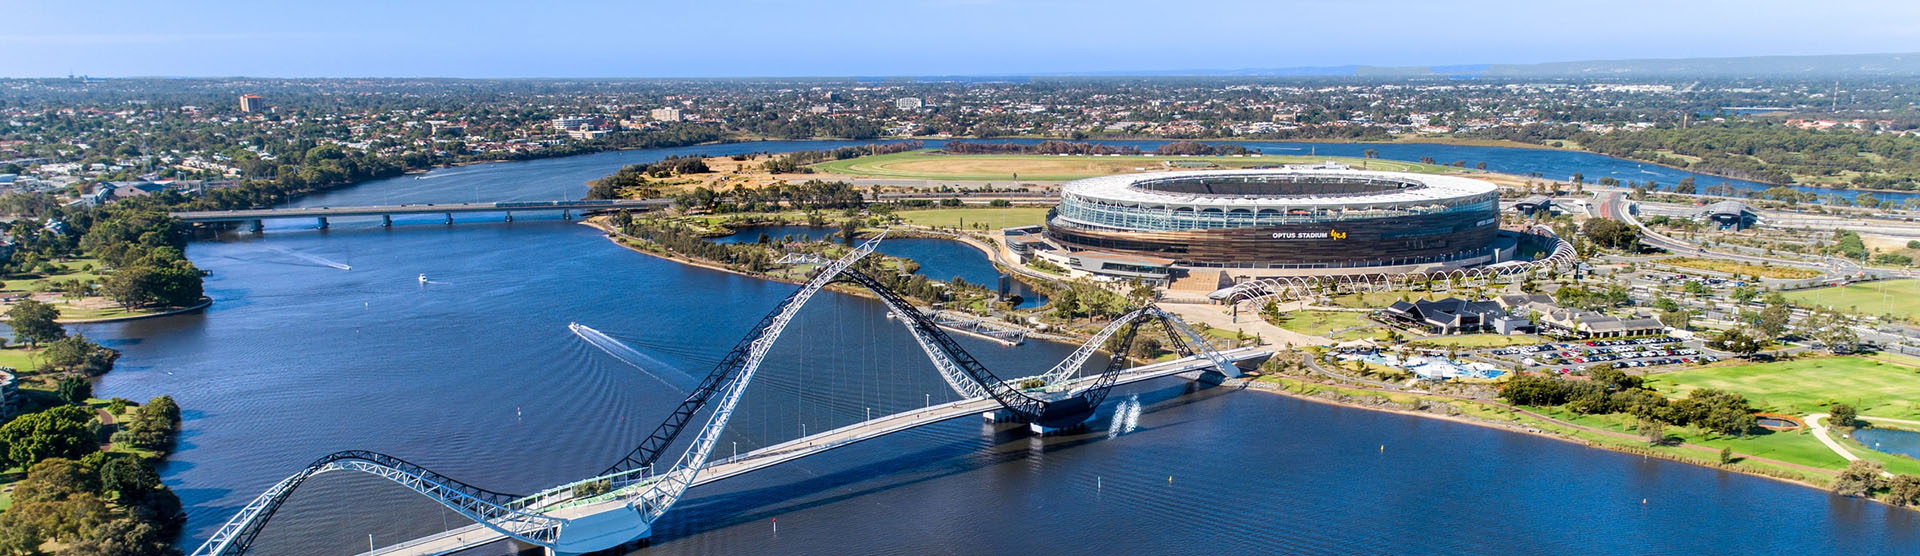 A view of the Swan River in Perth WA, the Optus Stadium is in background.